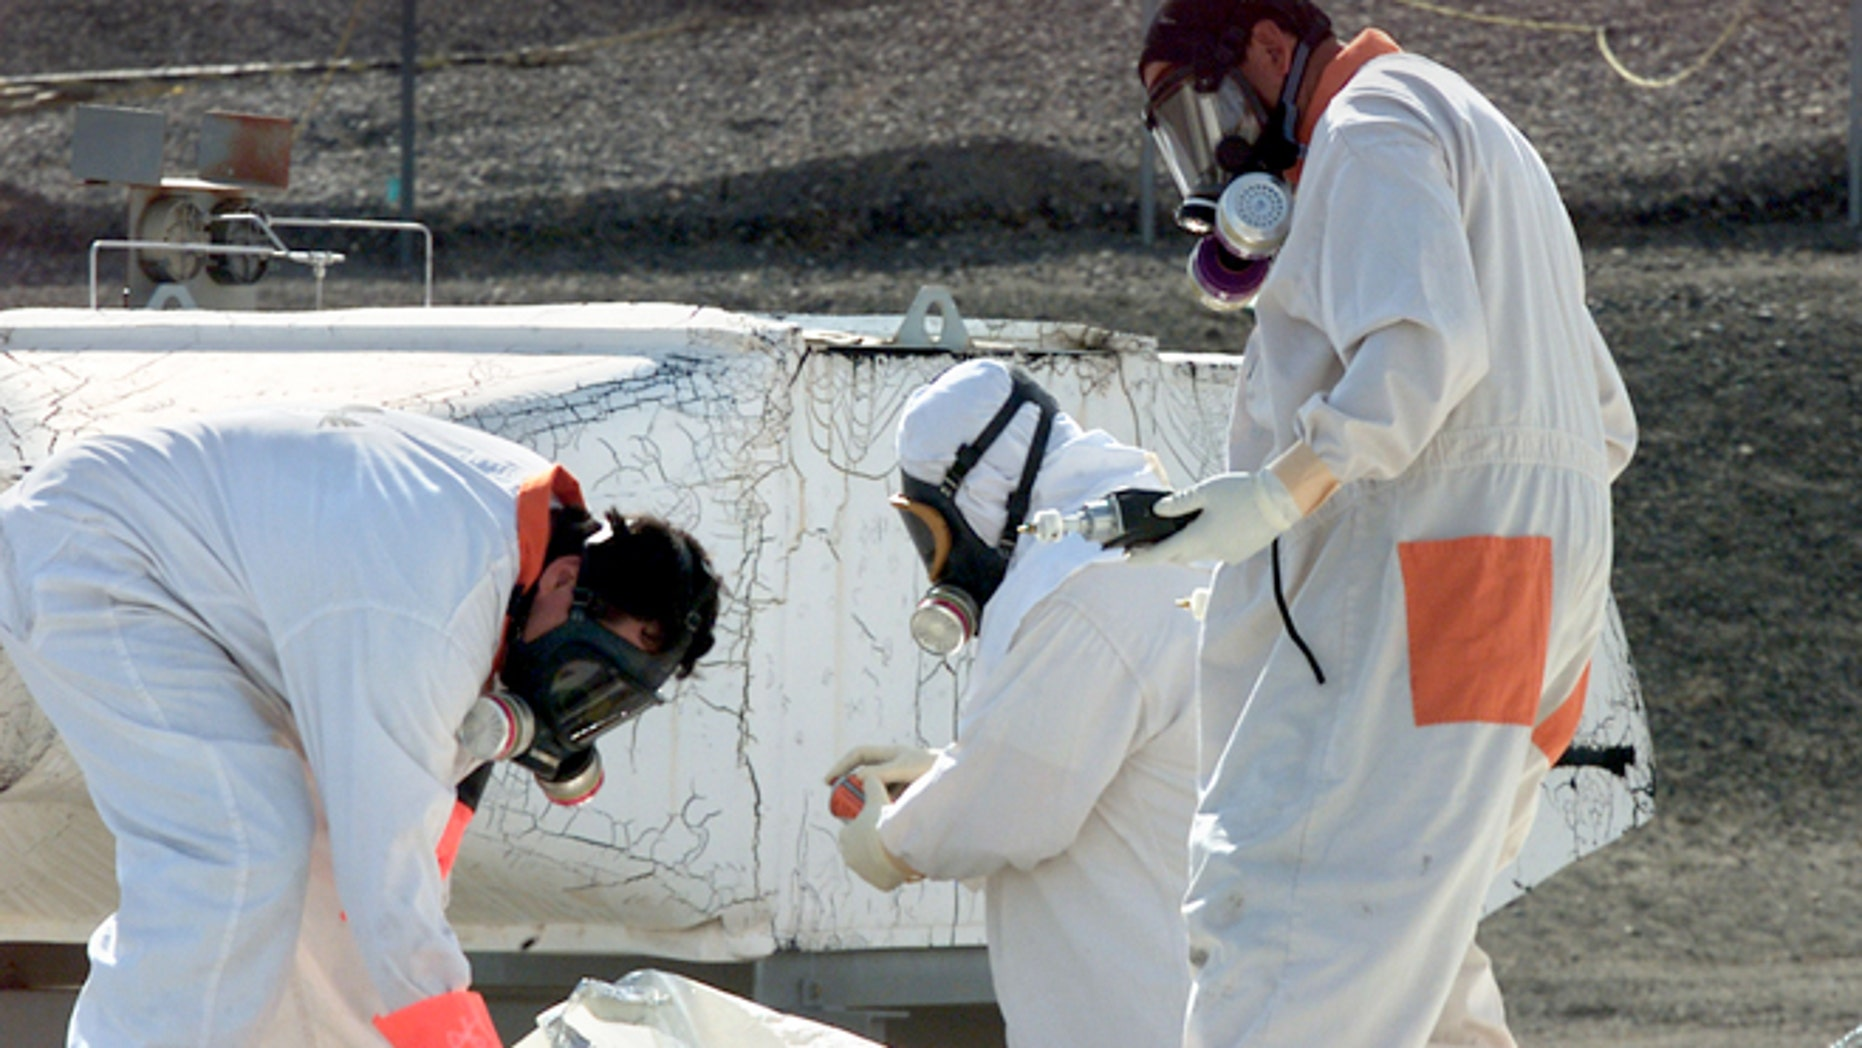 March 23, 2004: In this file photo, workers at the tank farms on the Hanford Nuclear Reservation near Richland, Wash., measure for radiation and the presence of toxic vapors.